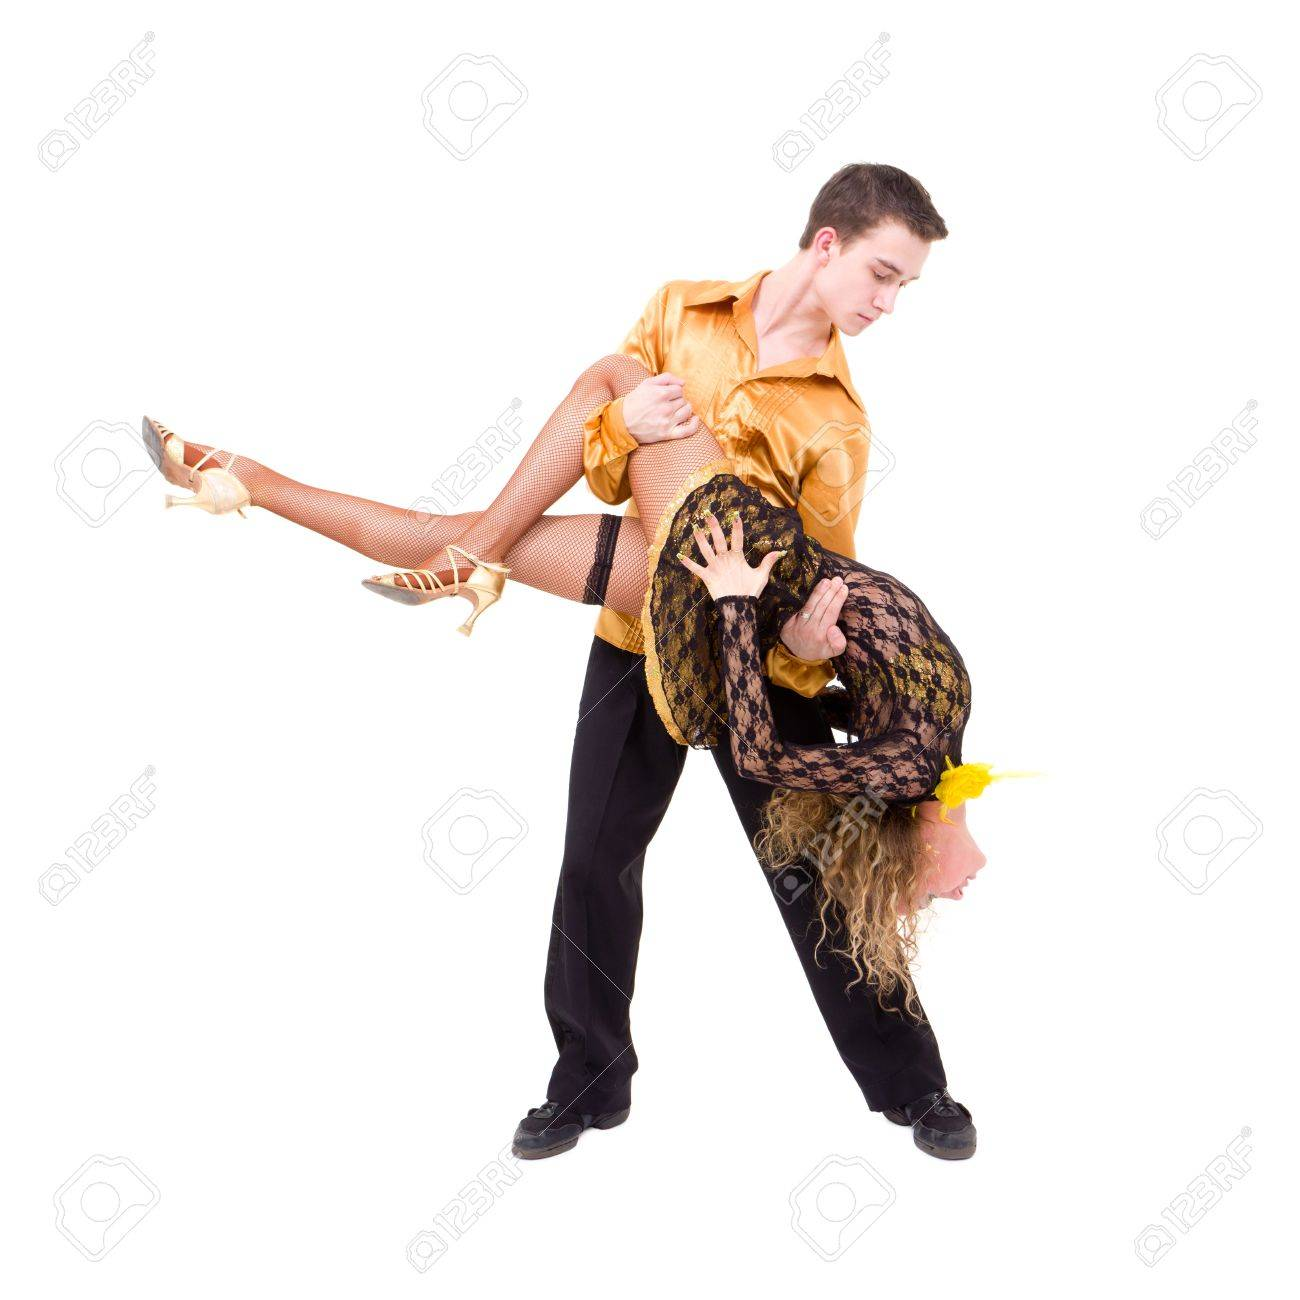 Young couple dancing latino against isolated white background Stock Photo - 8334706